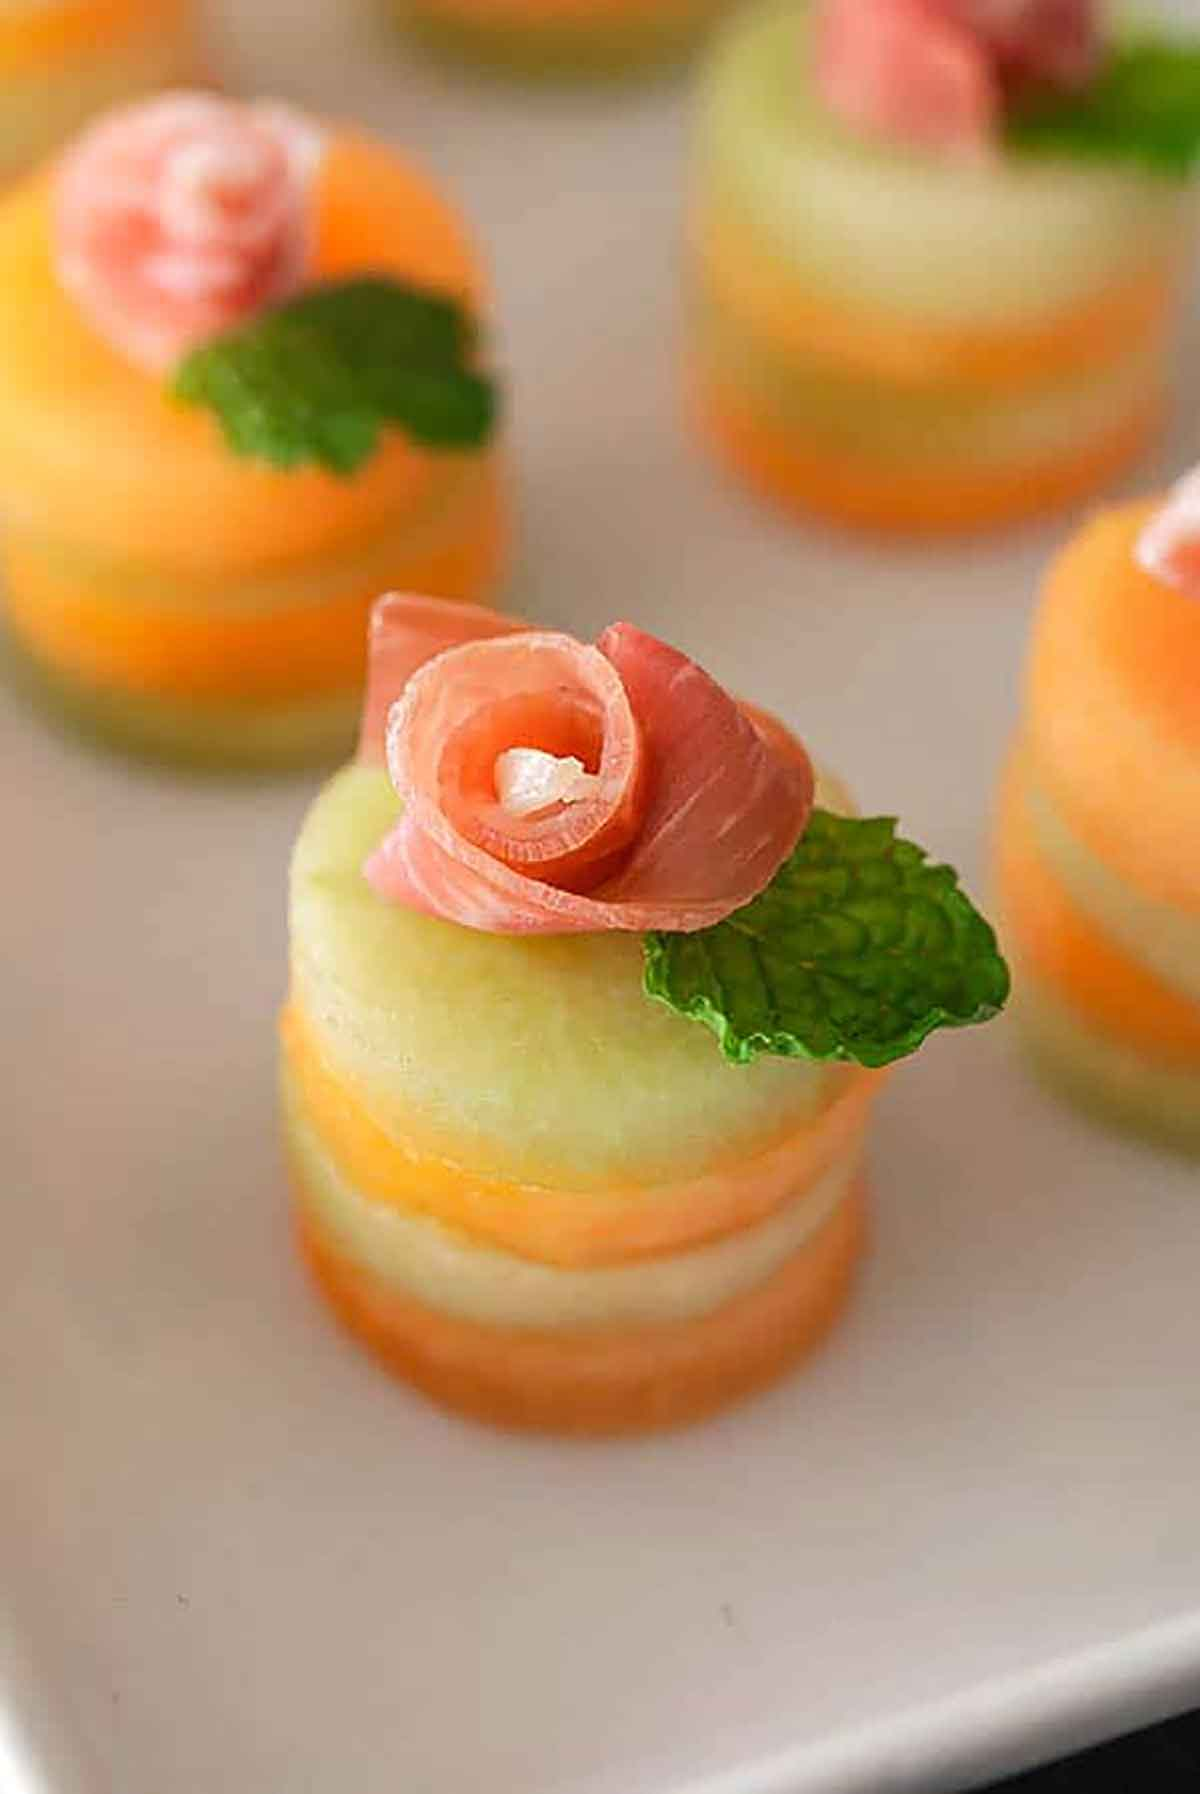 4 small melon appetizers with prosciutto roses and mint leaves on top.